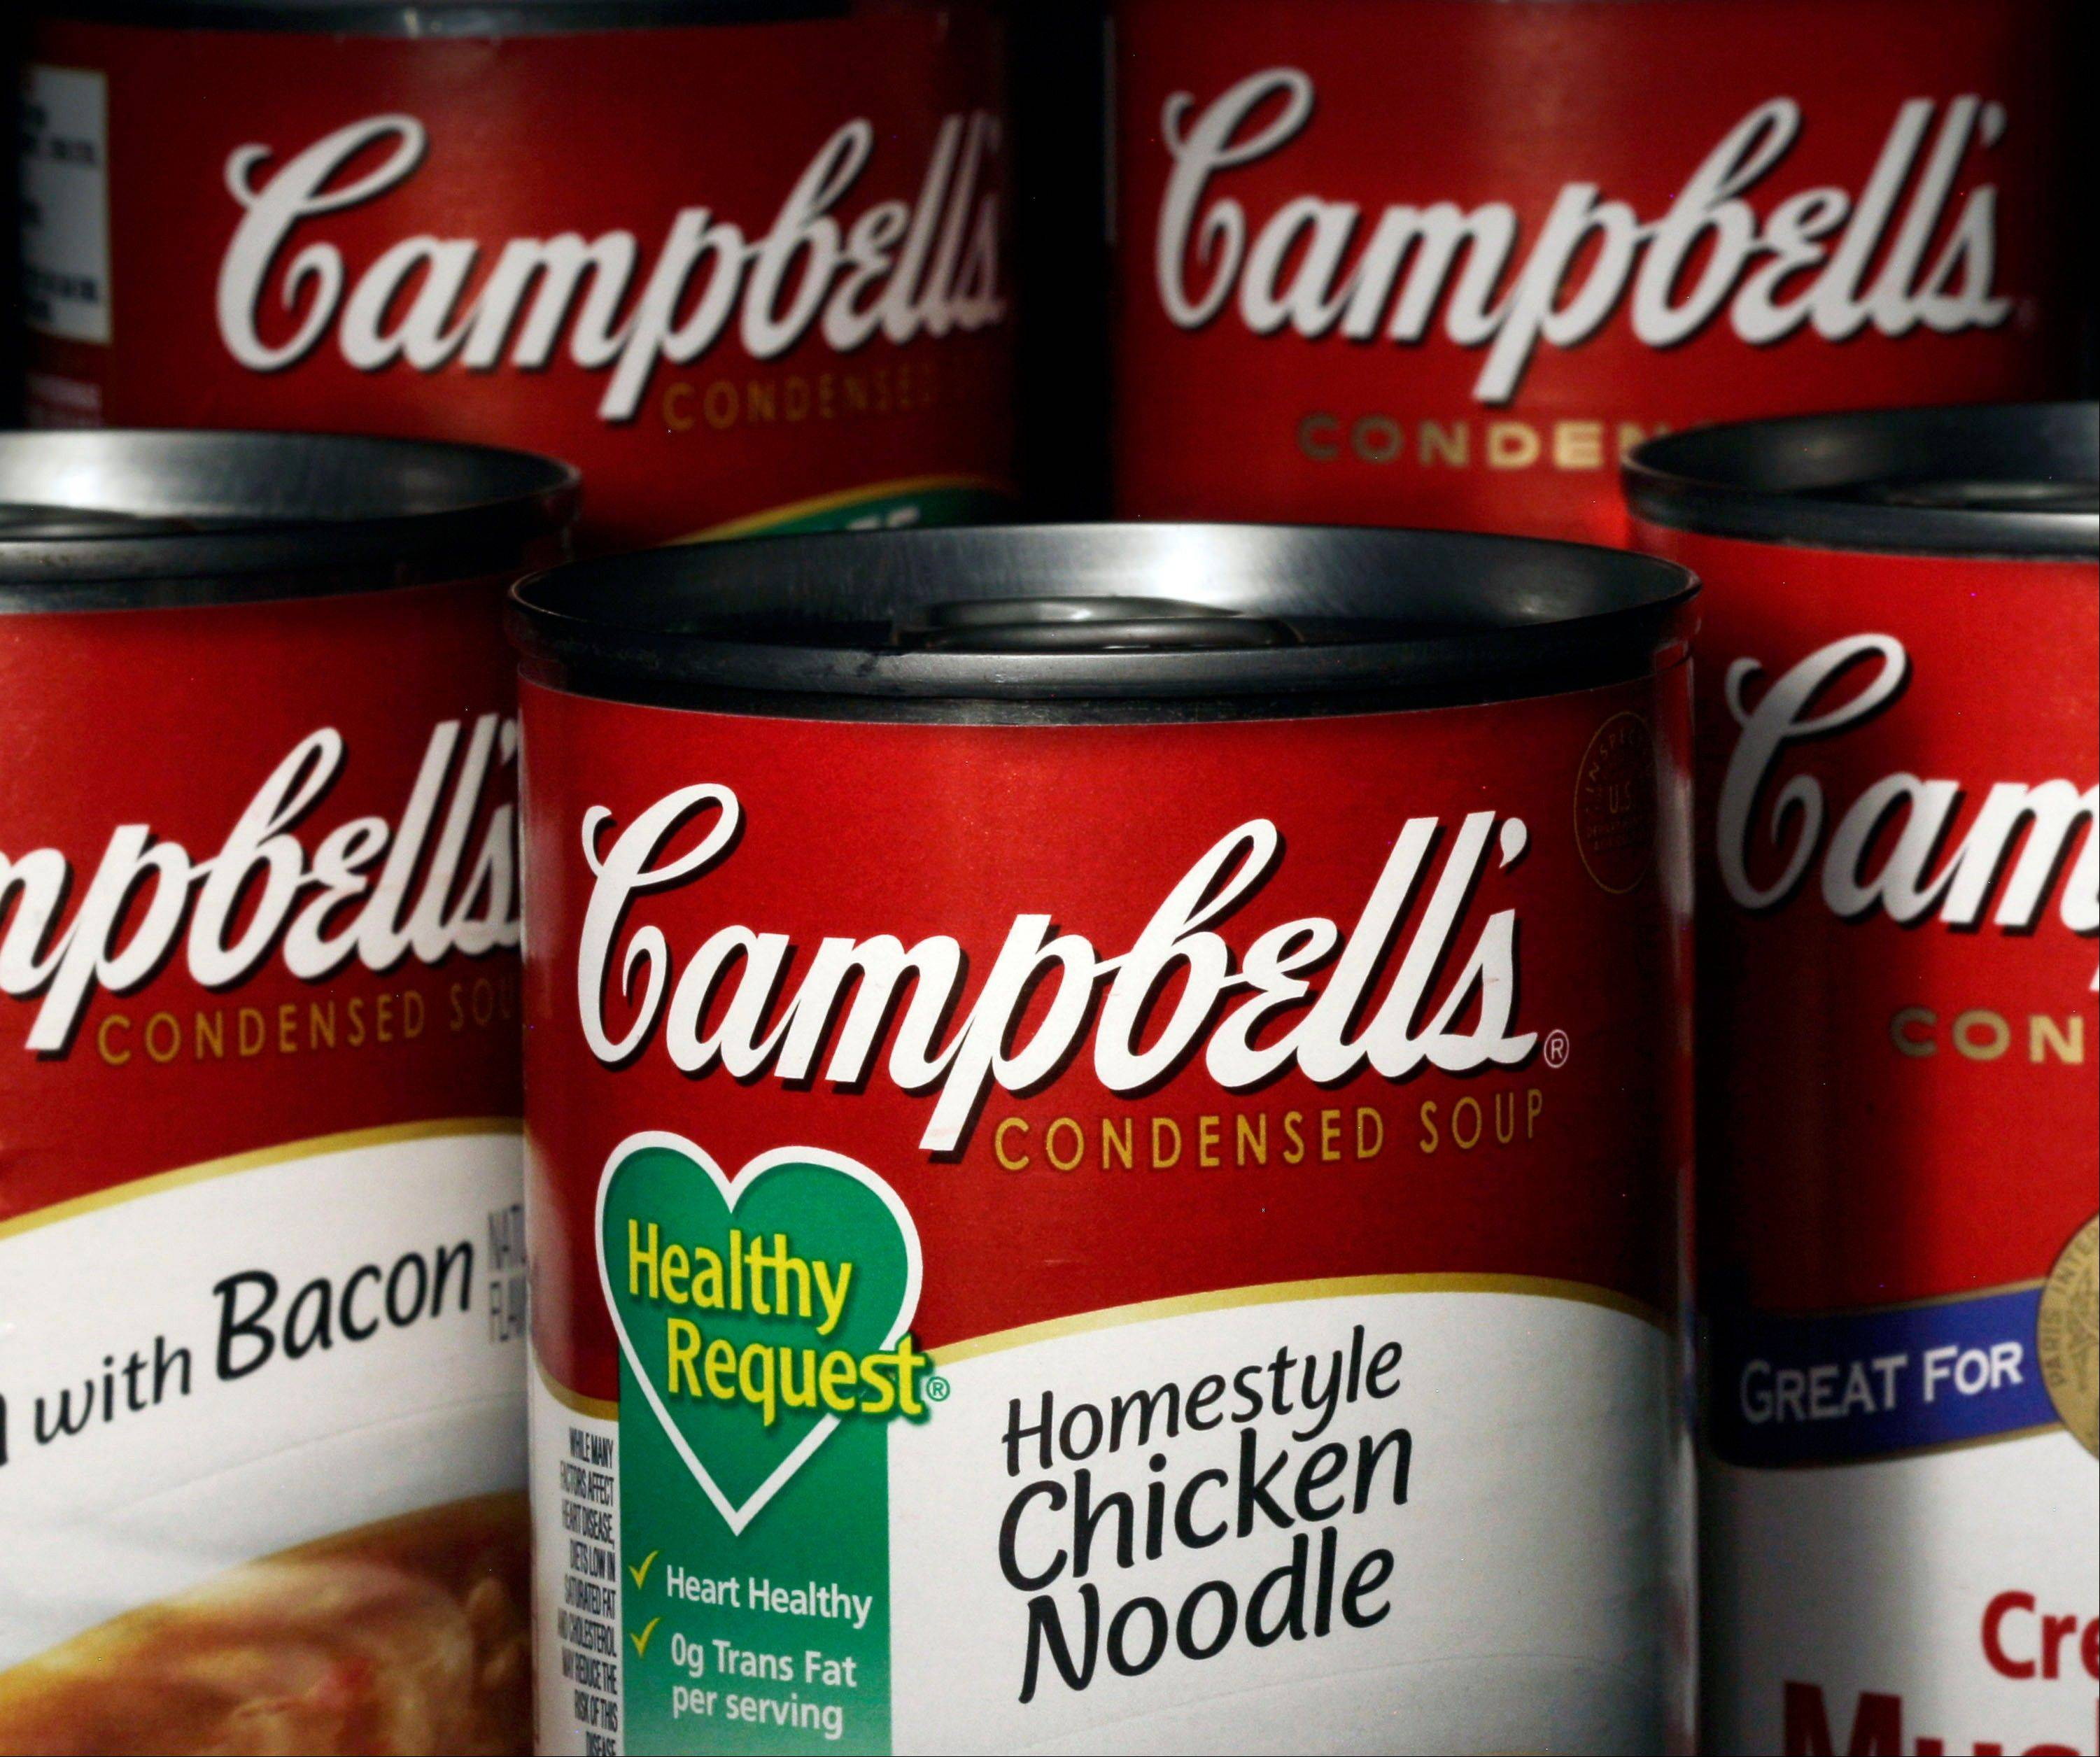 Campbell's soup cans sit on shelves in Moreland Hills, Ohio. Campbell announced Thursday that it will be closing two U.S. plants and cutting more than 700 jobs as it looks to trim costs amid declining canned soup consump